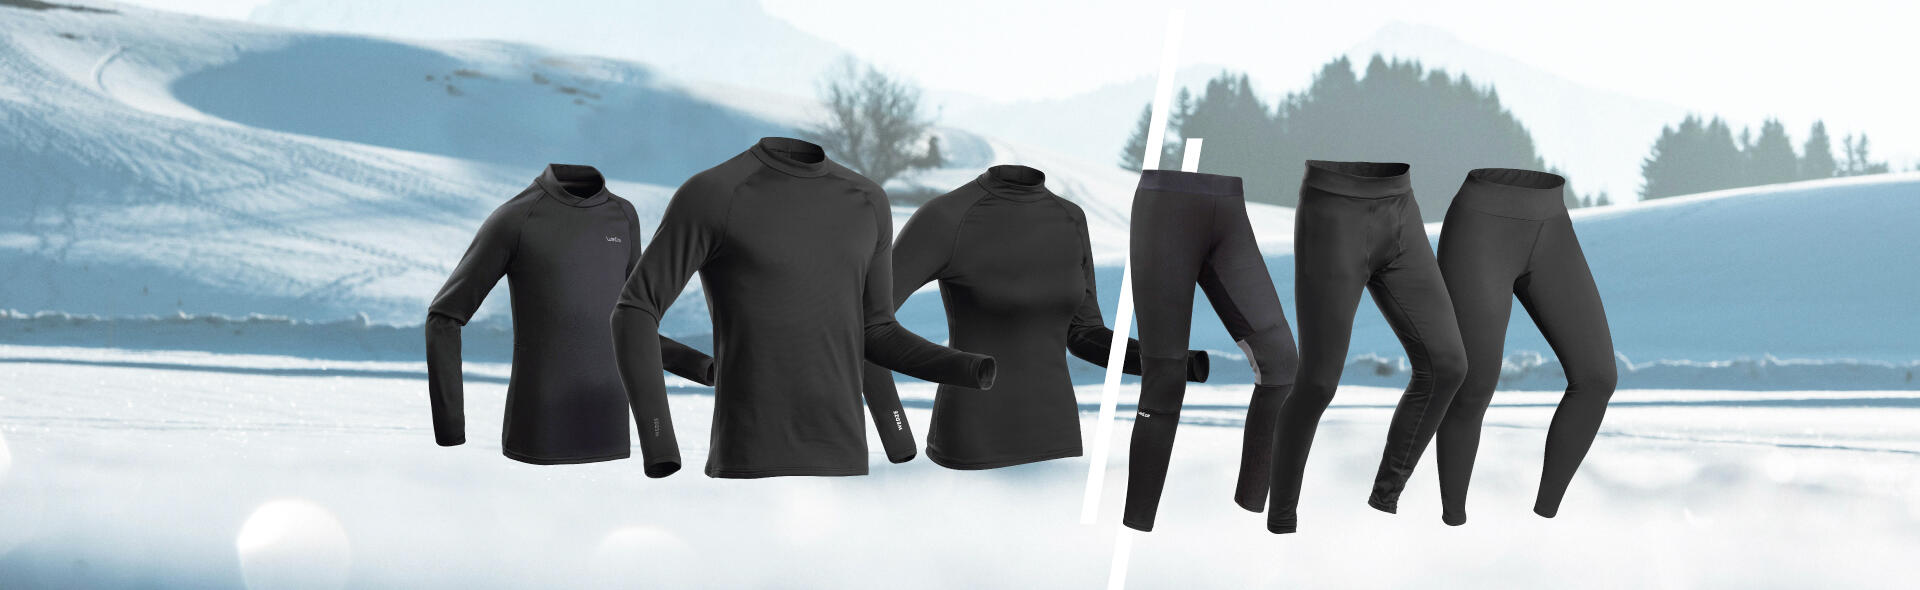 | SKI THERMAL BASE LAYERS